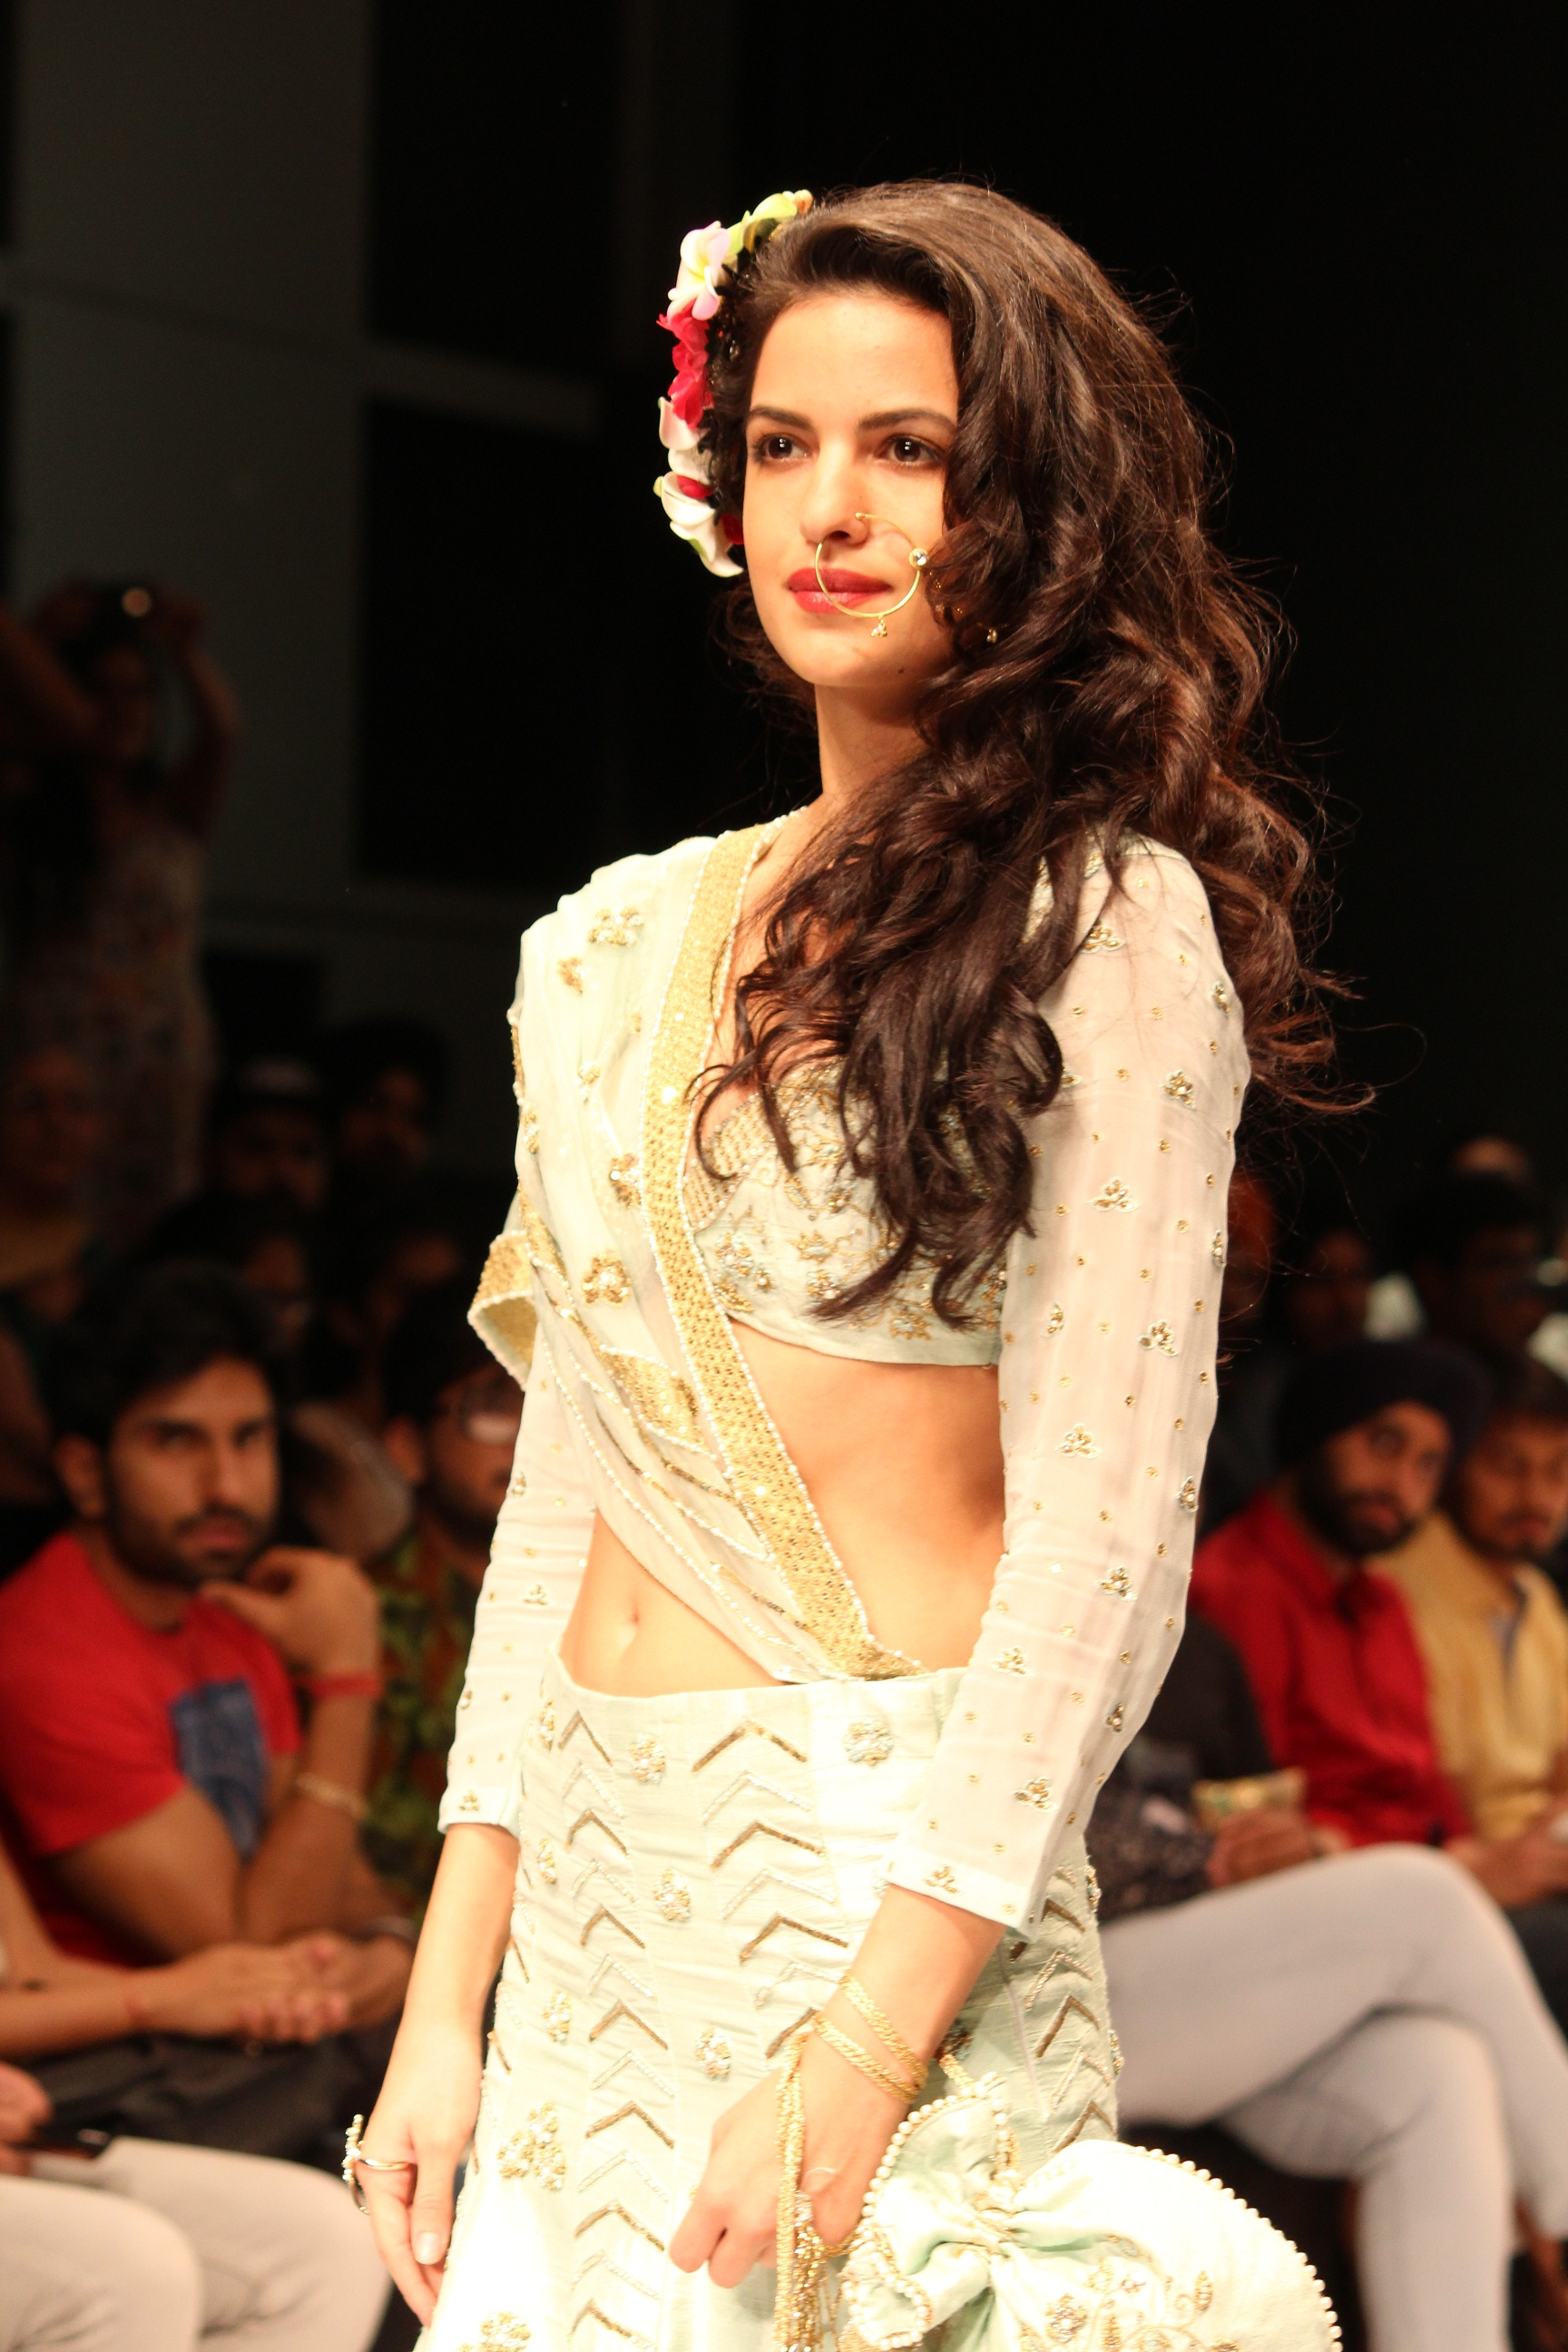 Natasha stankovic showcased the collection of Gauri Couture| India Runway Week Season 6 Highlights| cherryontopblog.com